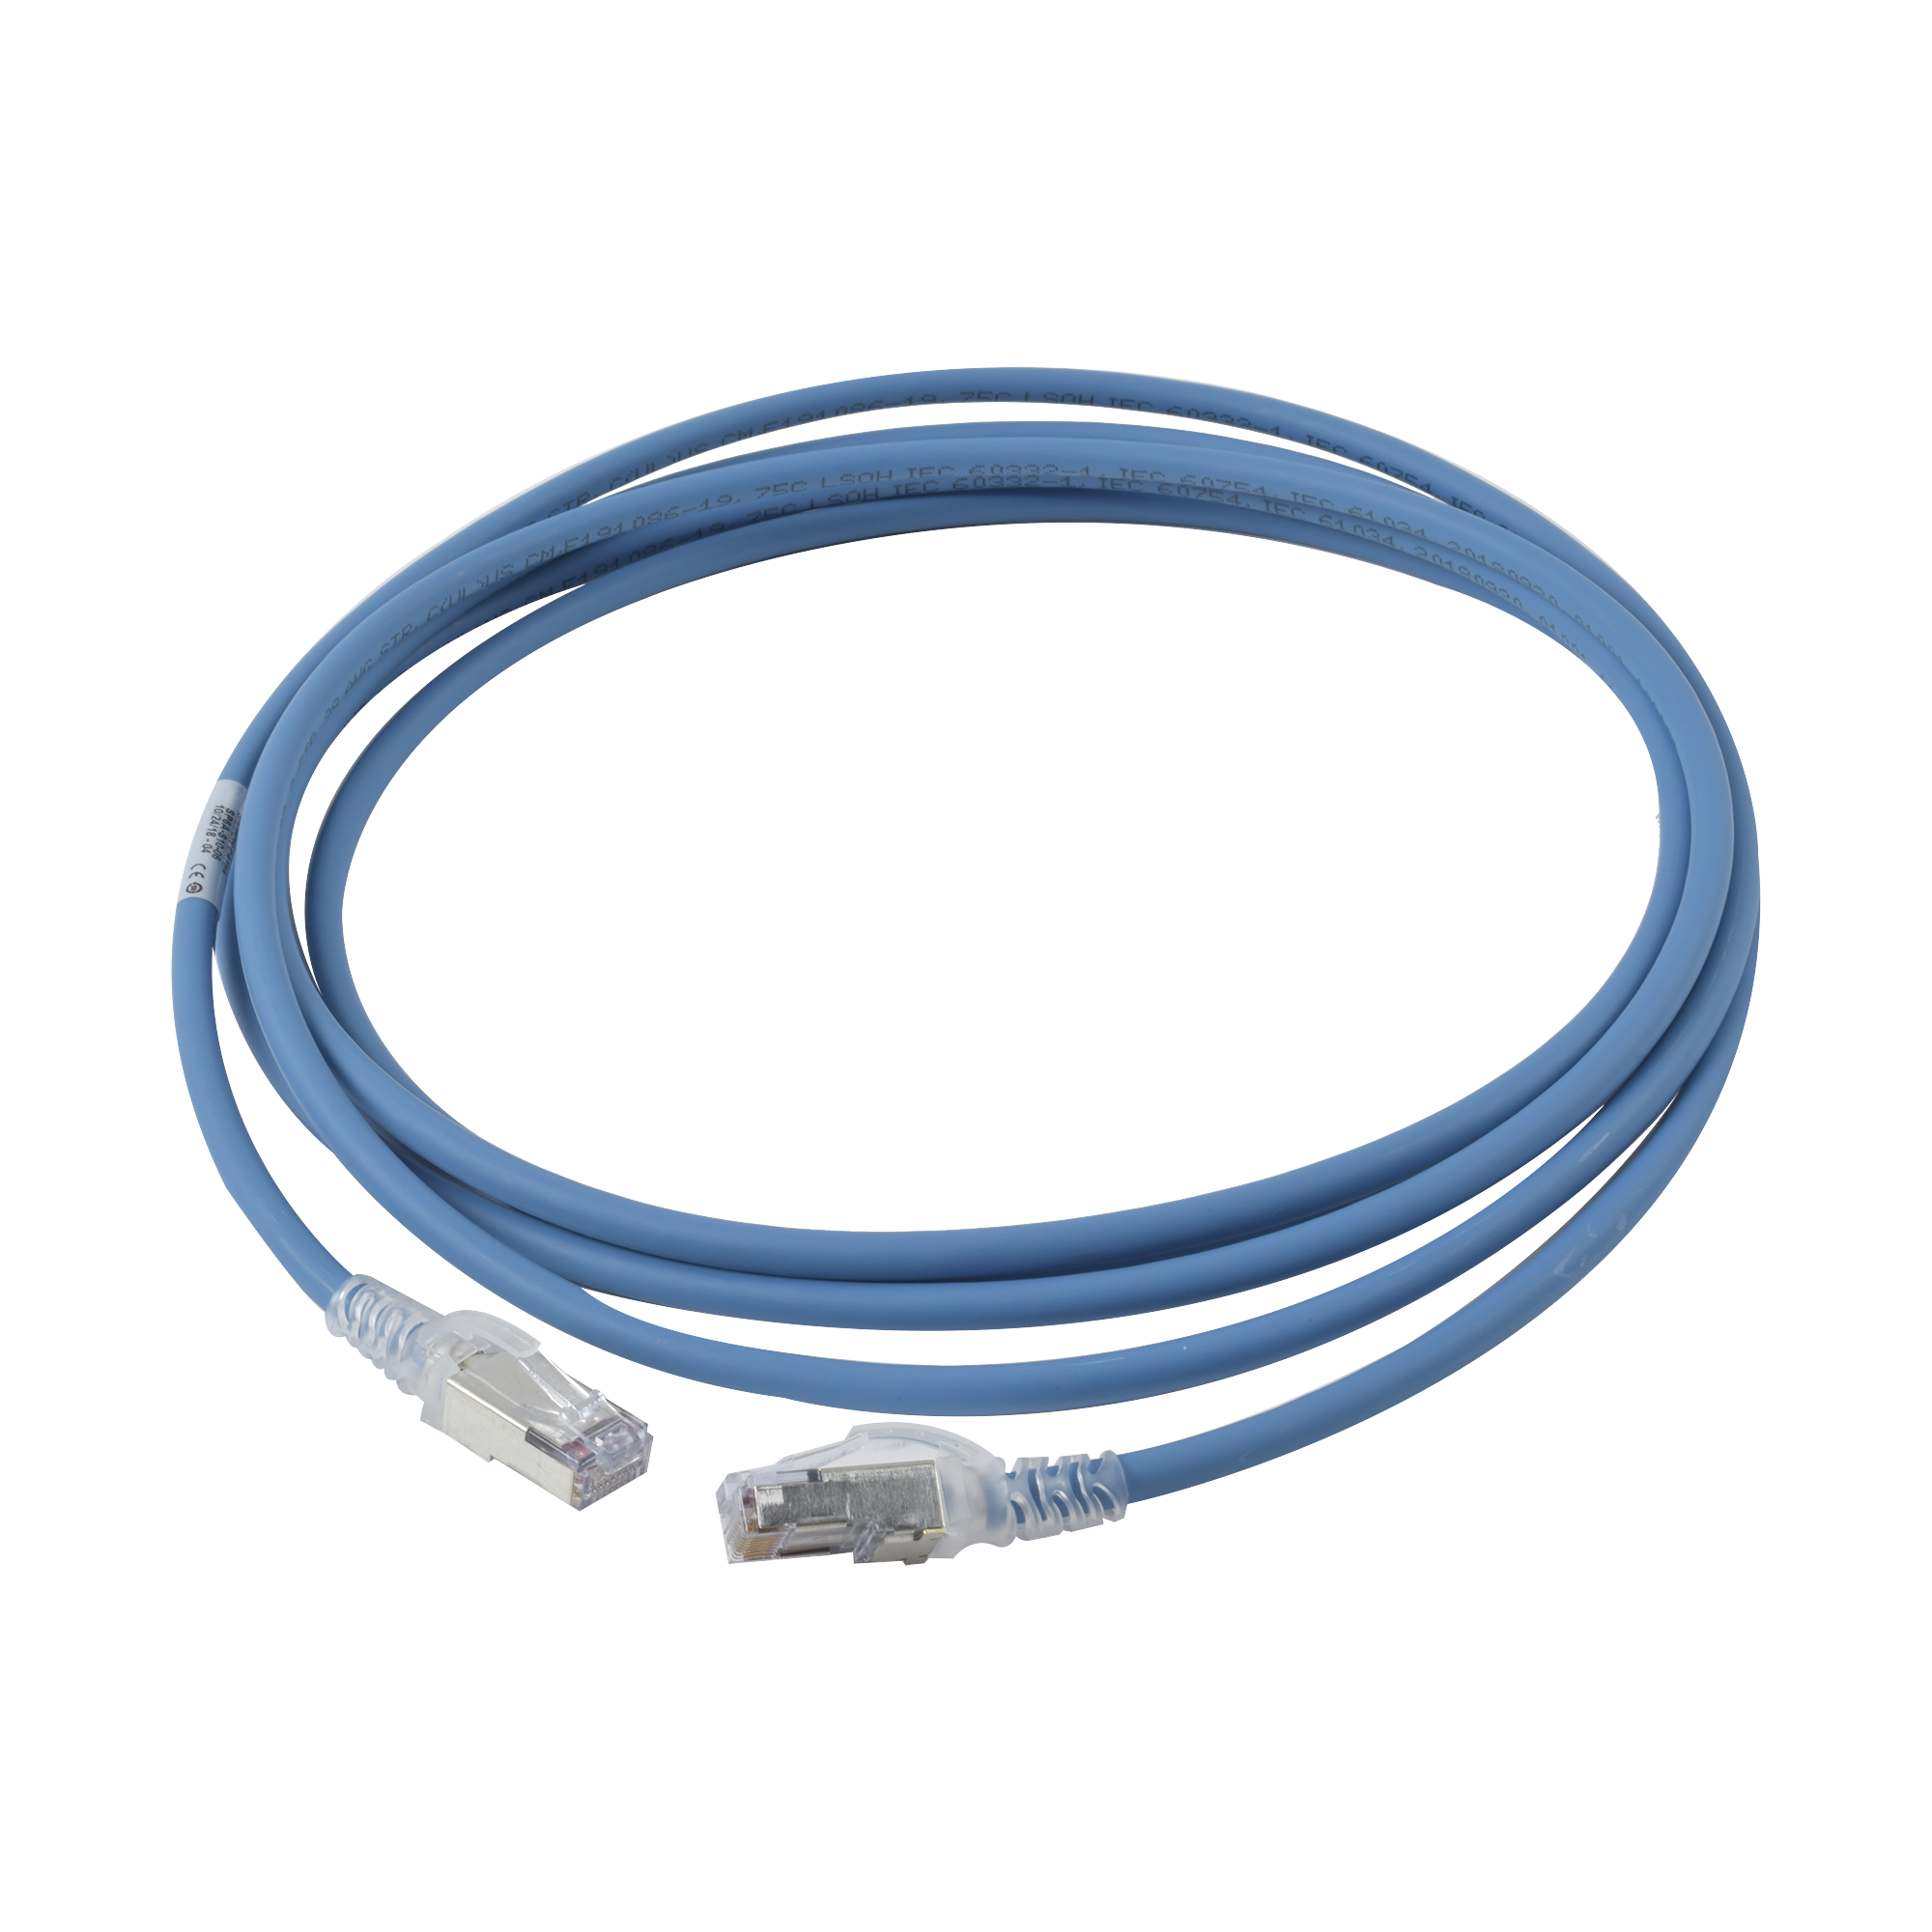 Patch Cord Skinny Cat6A Blindado S/FTP, 10ft, Diámetro Reducido 28 AWG, Color Azul